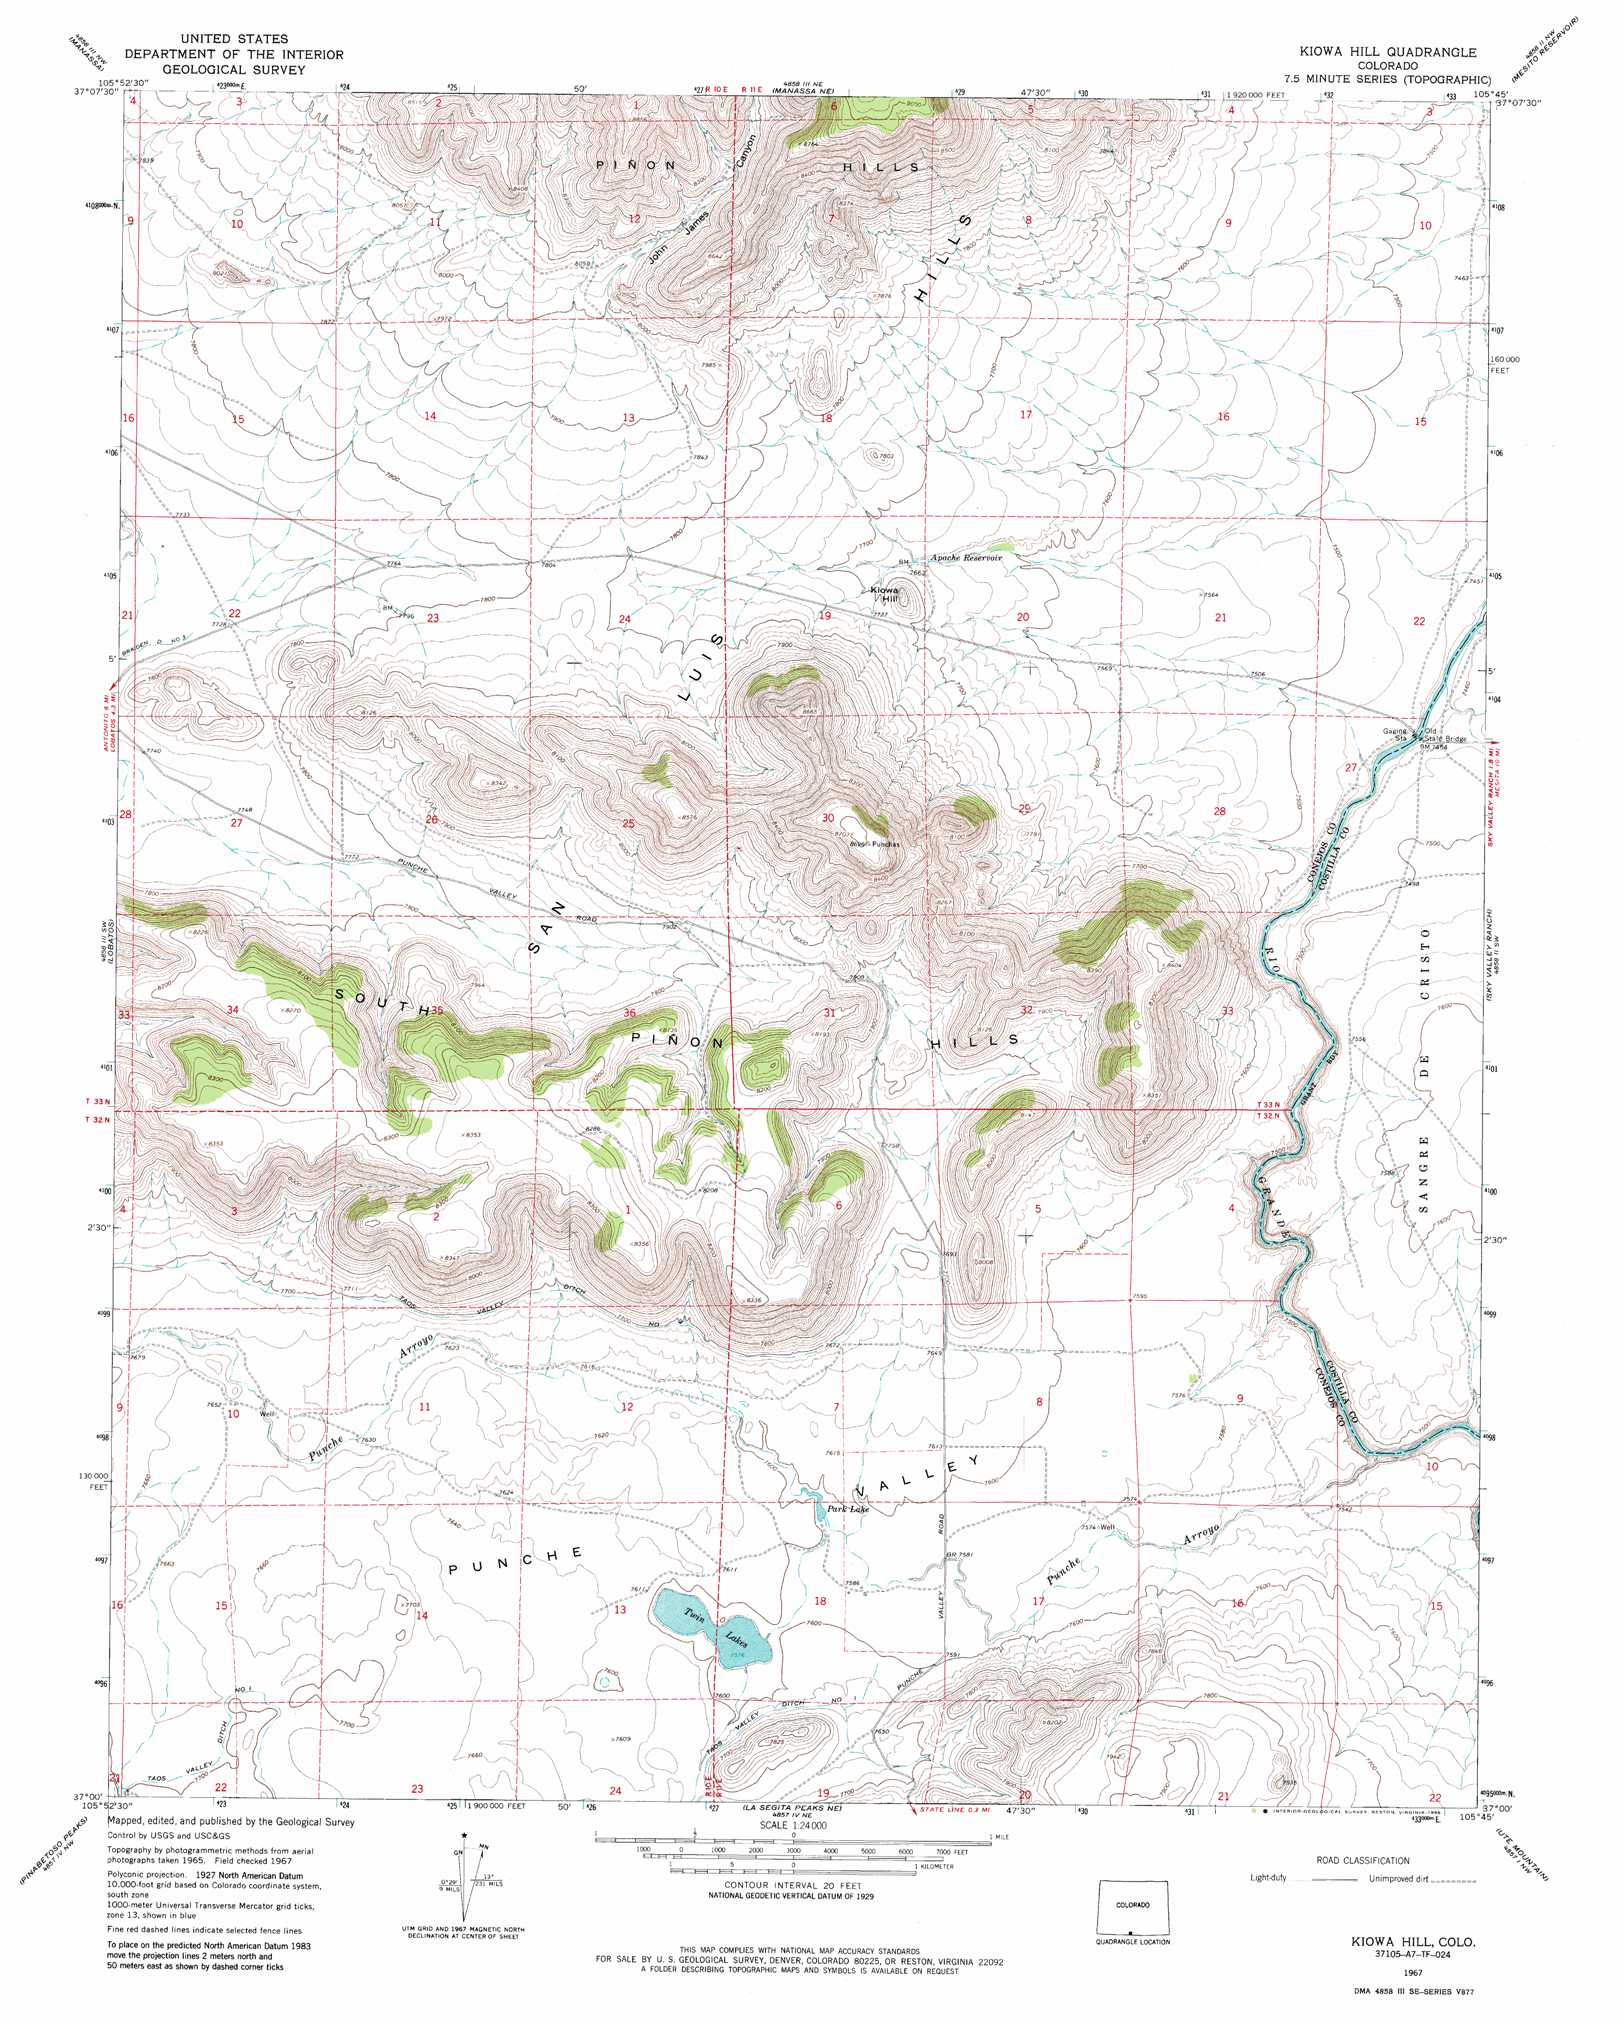 Kiowa Hill topographic map, CO - USGS Topo Quad 37105a7